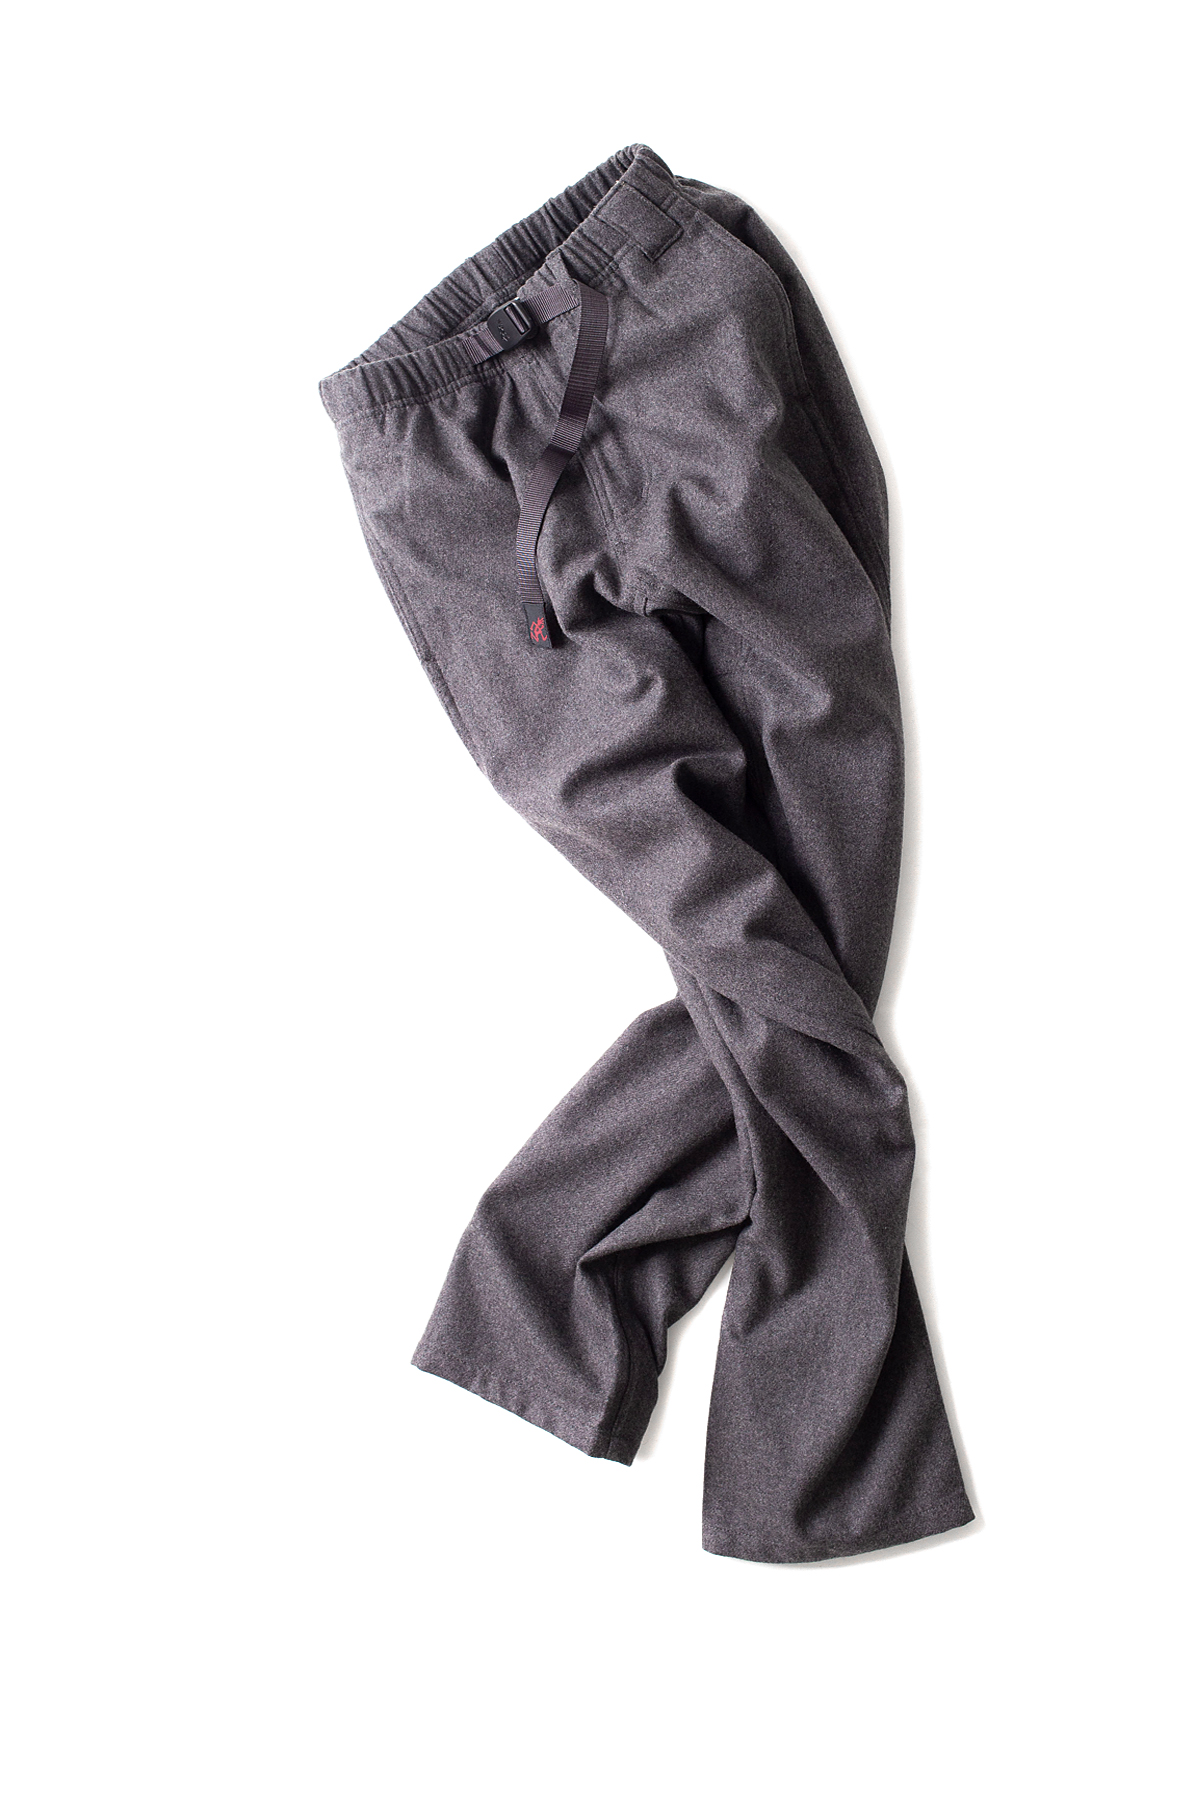 Gramicci : Wool Blend Gramicci Pants (Charcoal)